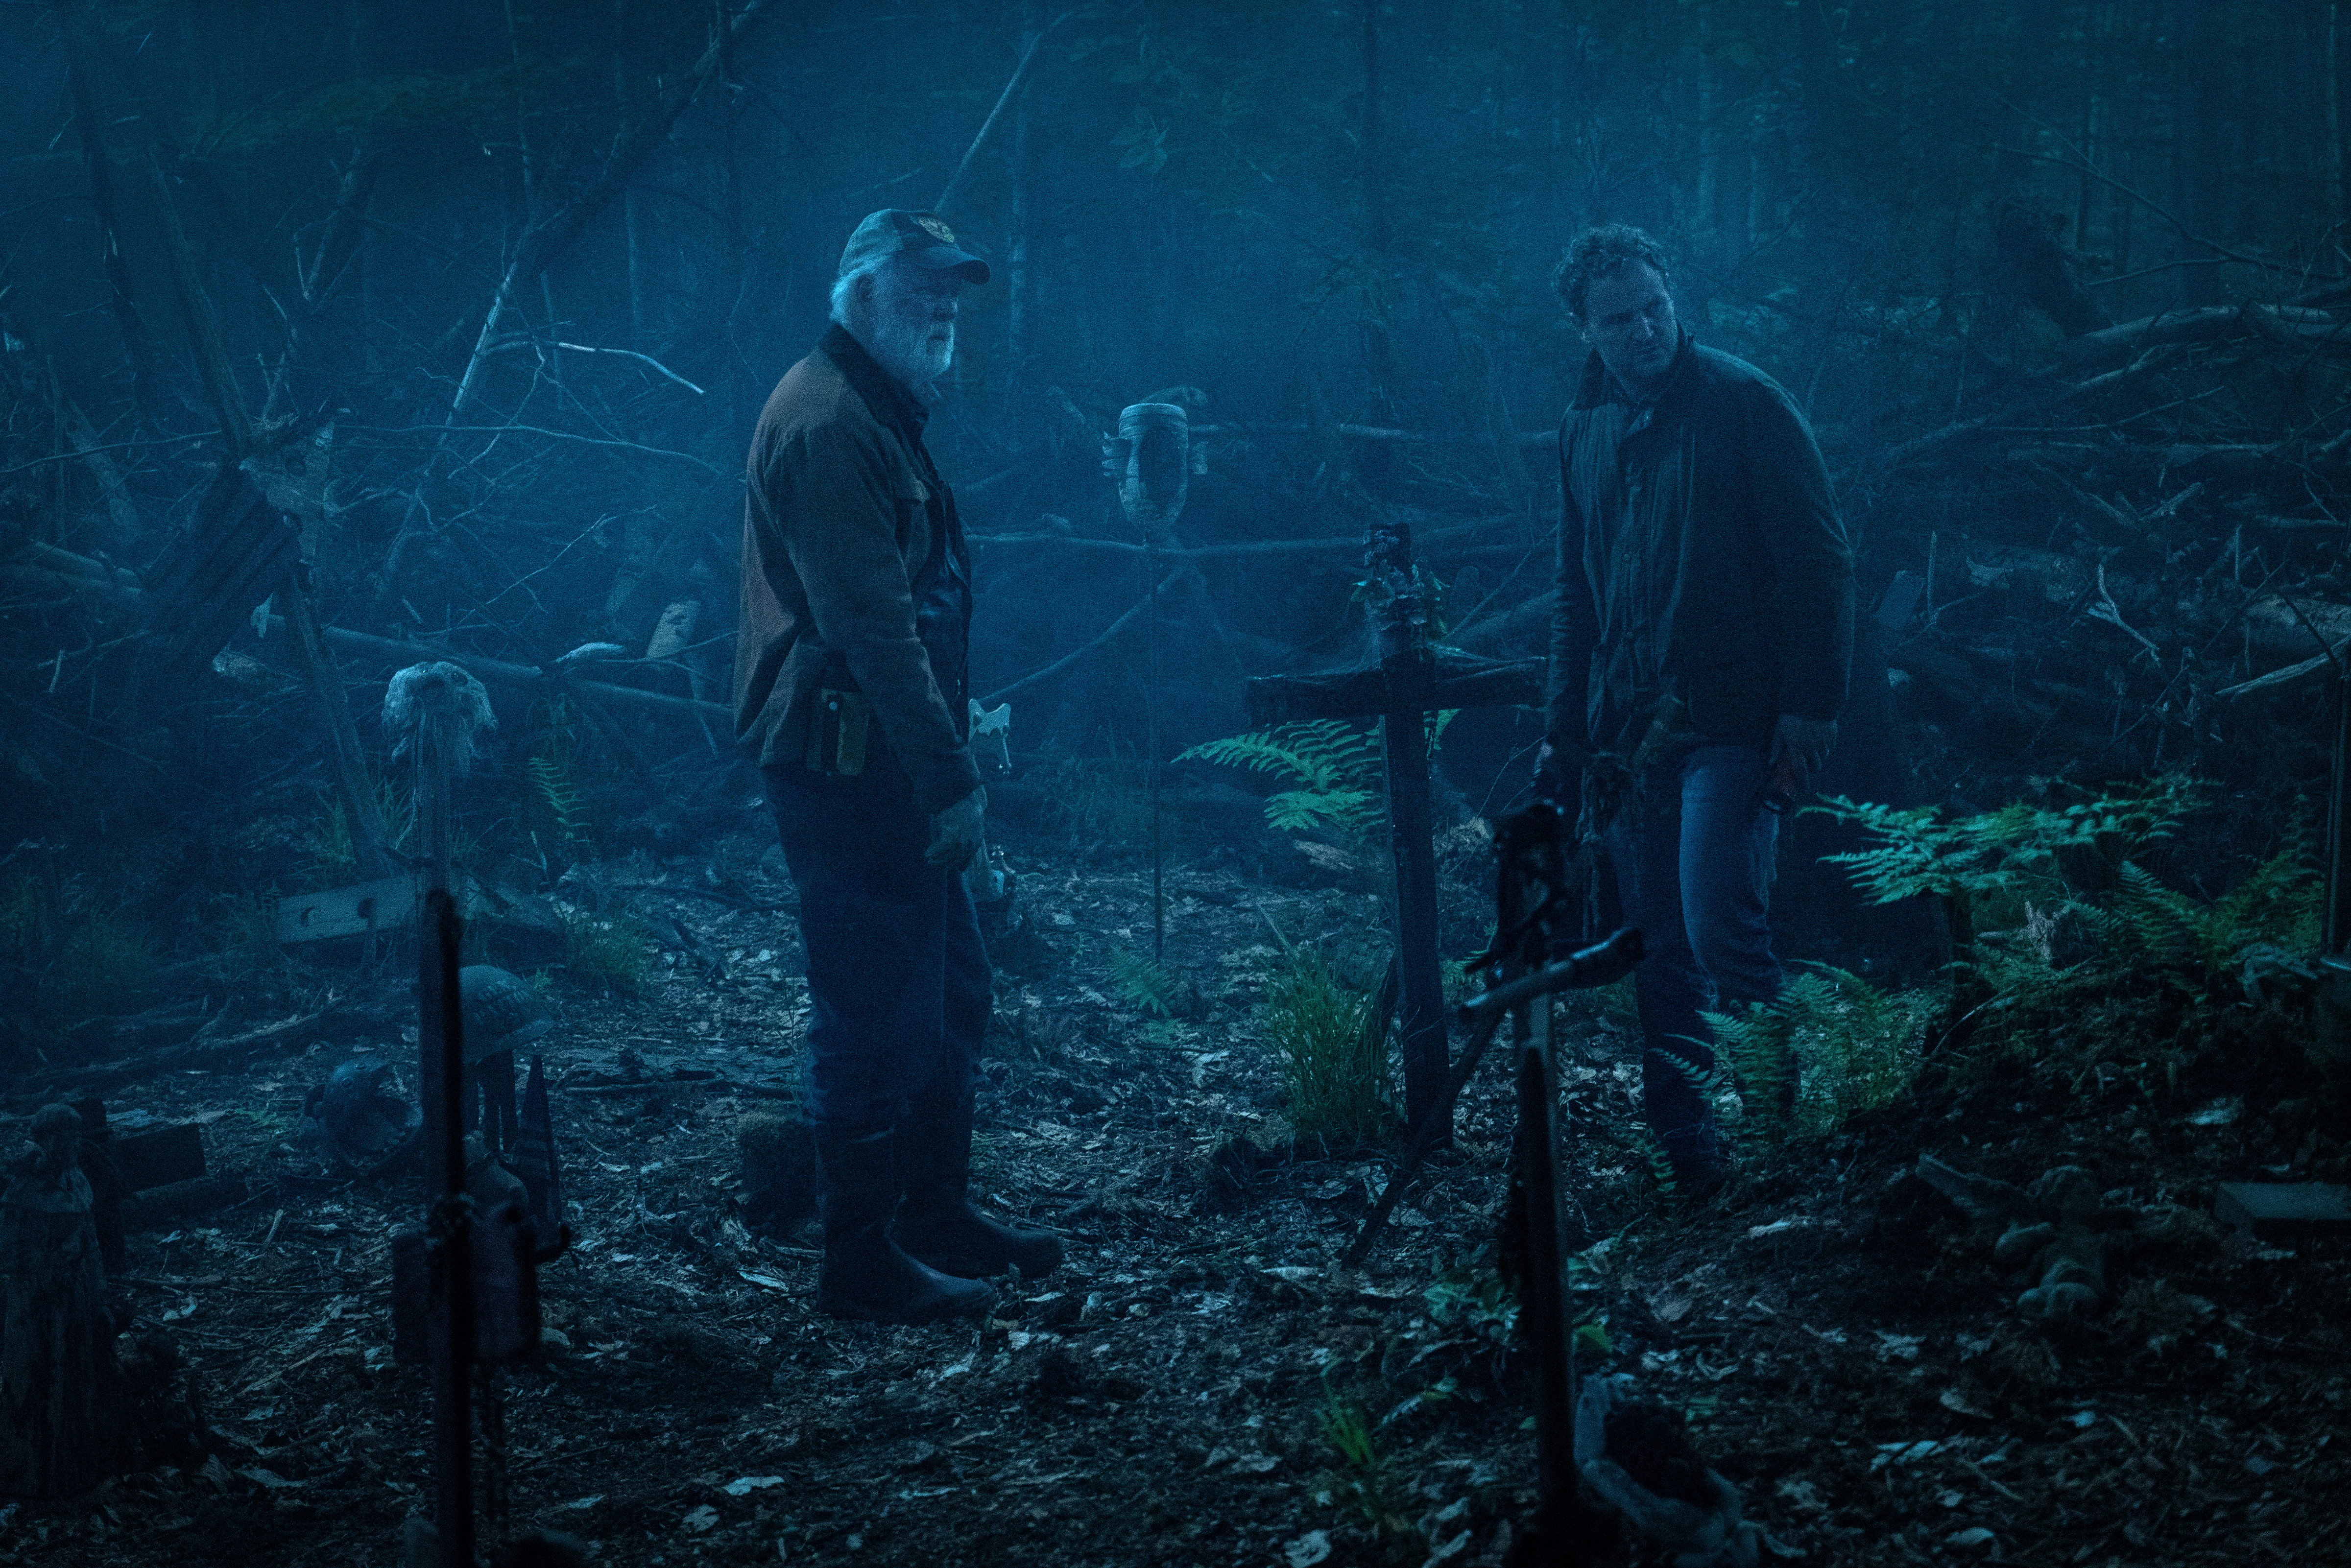 [Trailer] Heed the Warnings in the New Trailer for PET SEMATARY